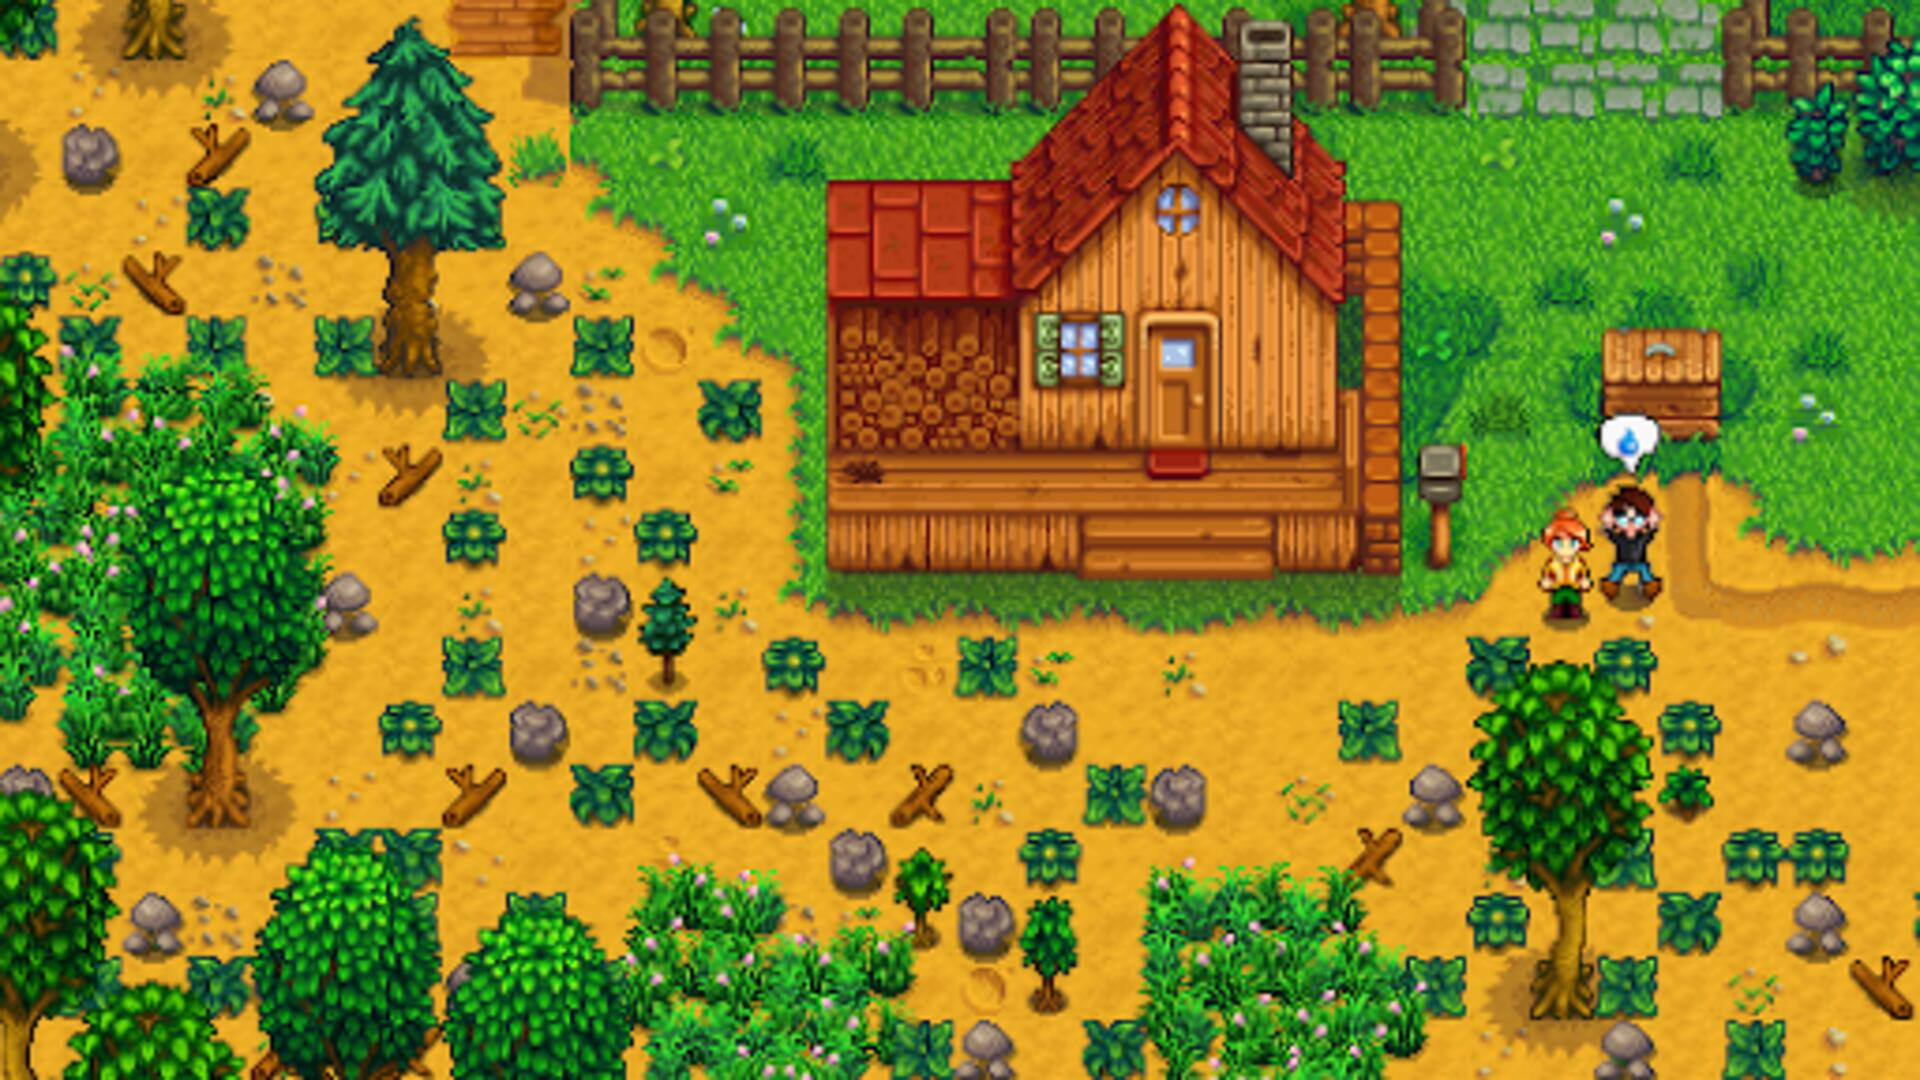 Stardew Valley Guide - Essential Tips to Help You Become the